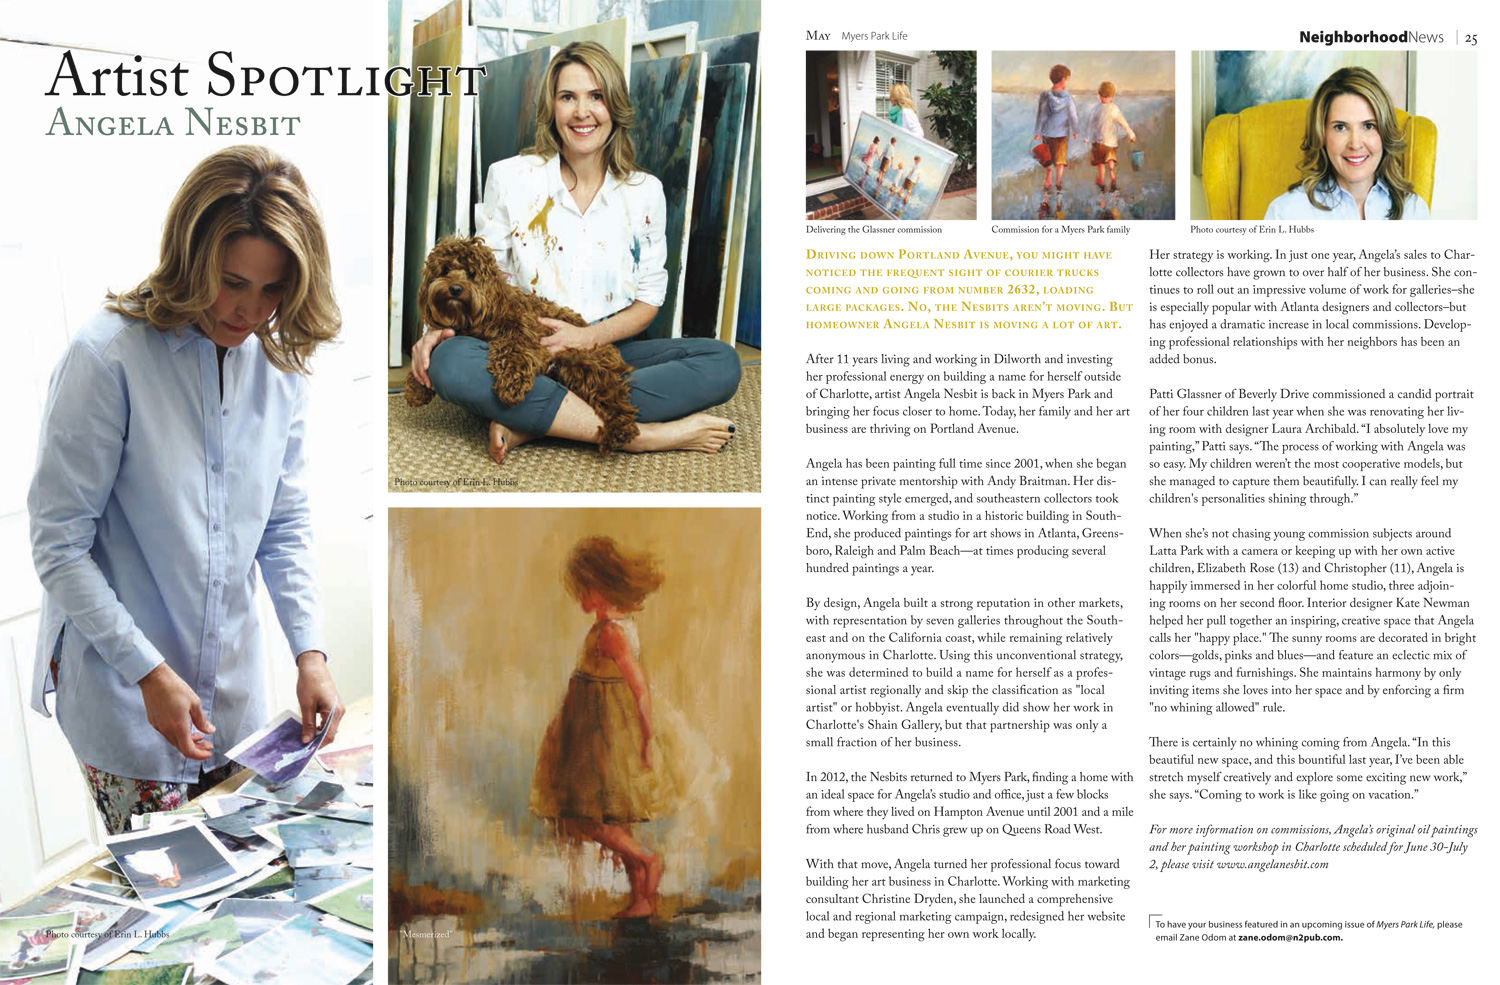 May 2015: Myers Park Life Magazine: featuring Angela Nesbit